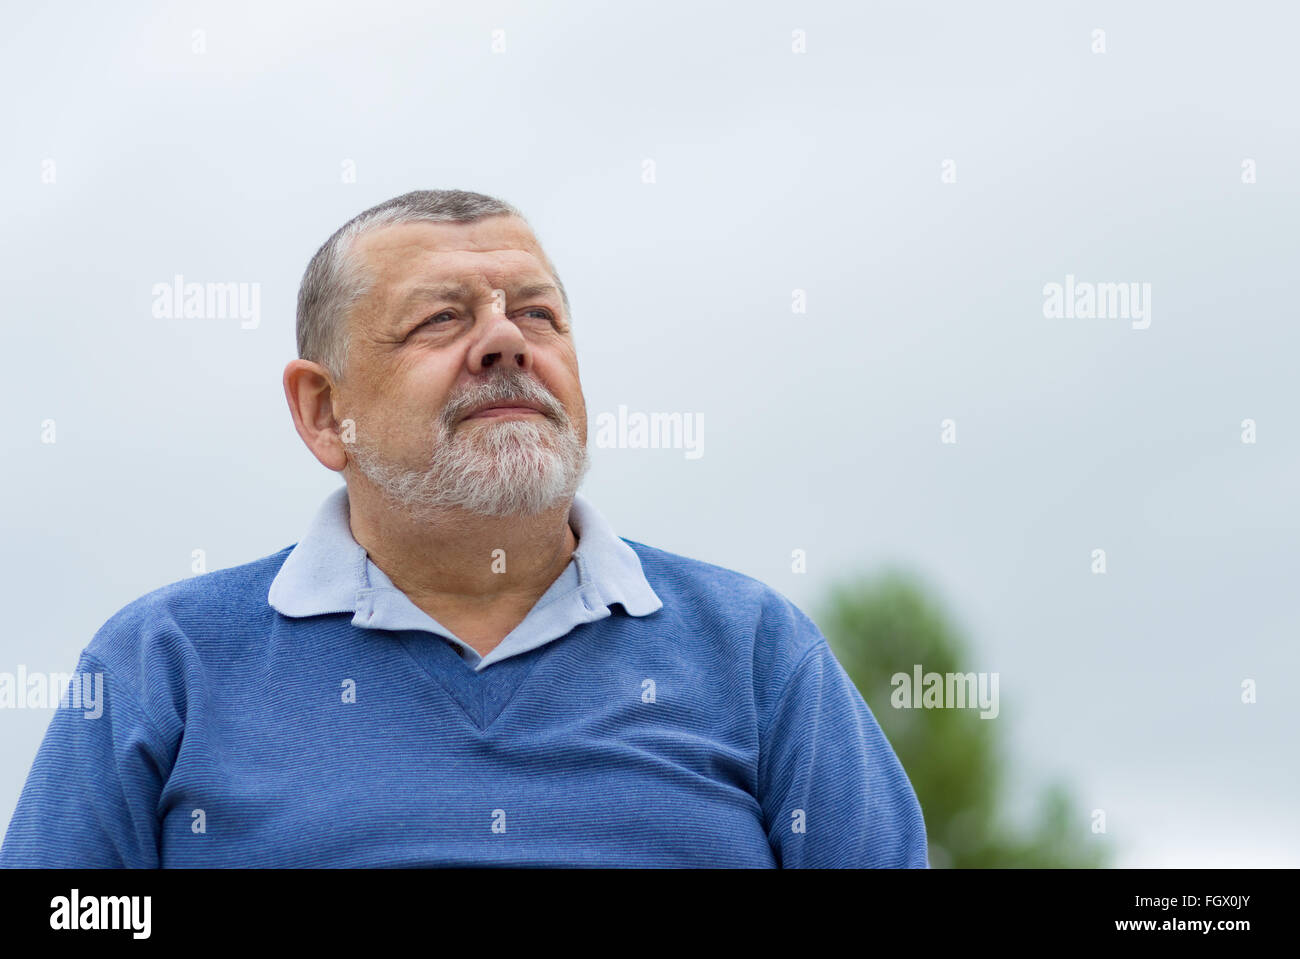 Outdoor portrait of a senior man looking up barbu avec espoir Photo Stock